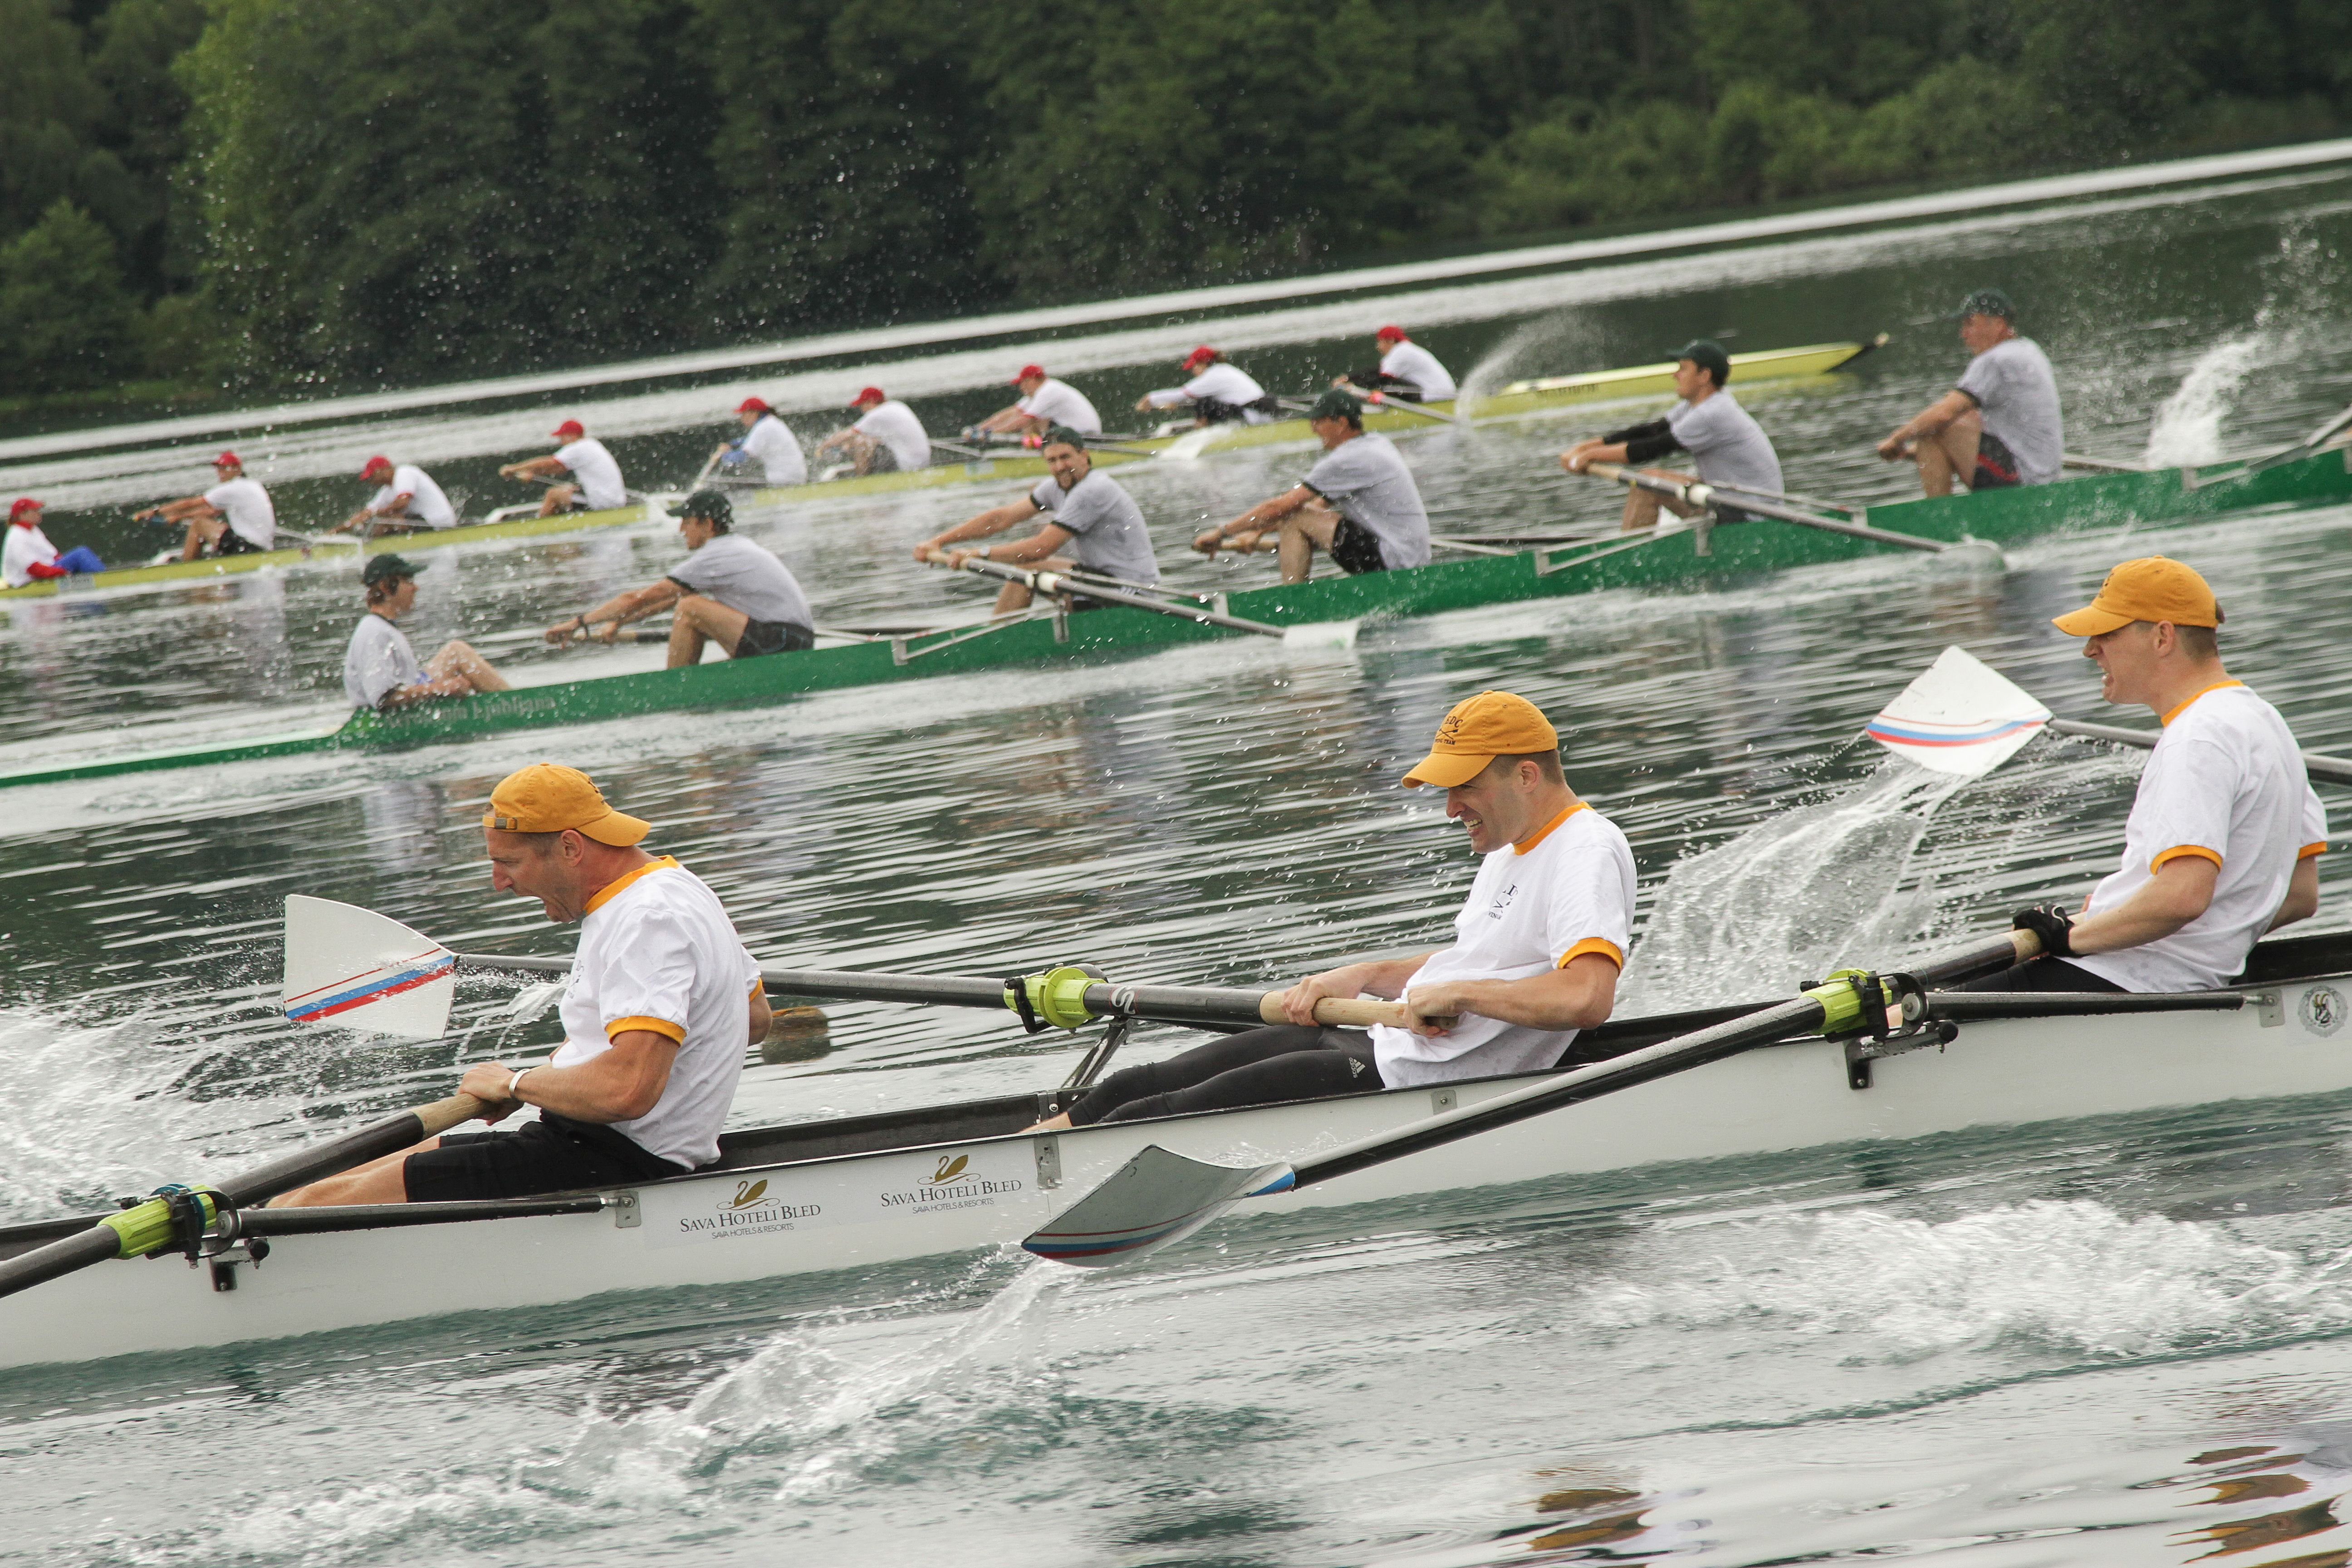 rowing_bled